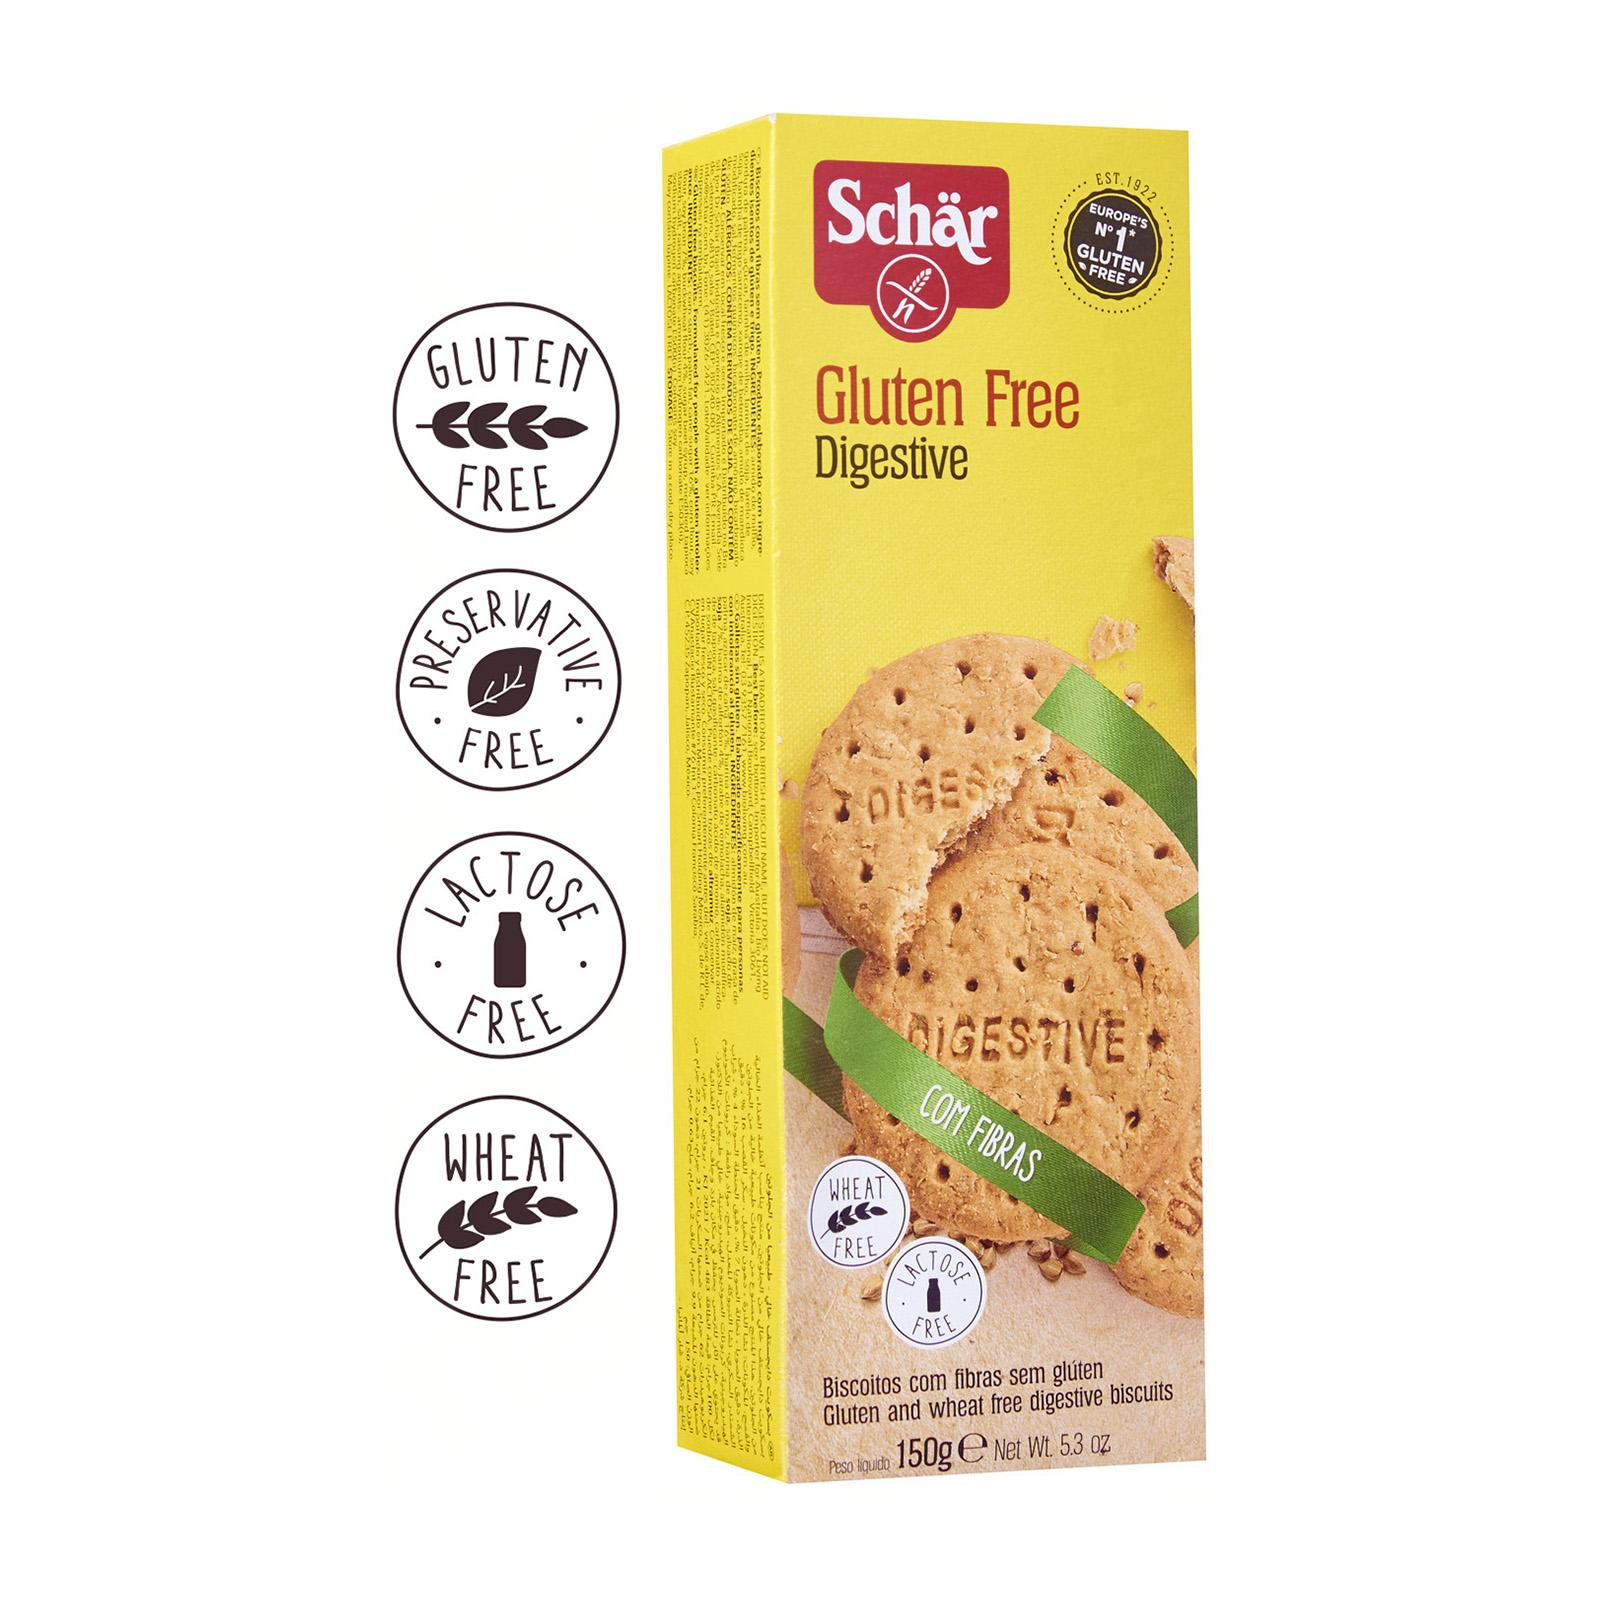 Dr. Schar Digestive Cookies - Gluten Free by Agora Products